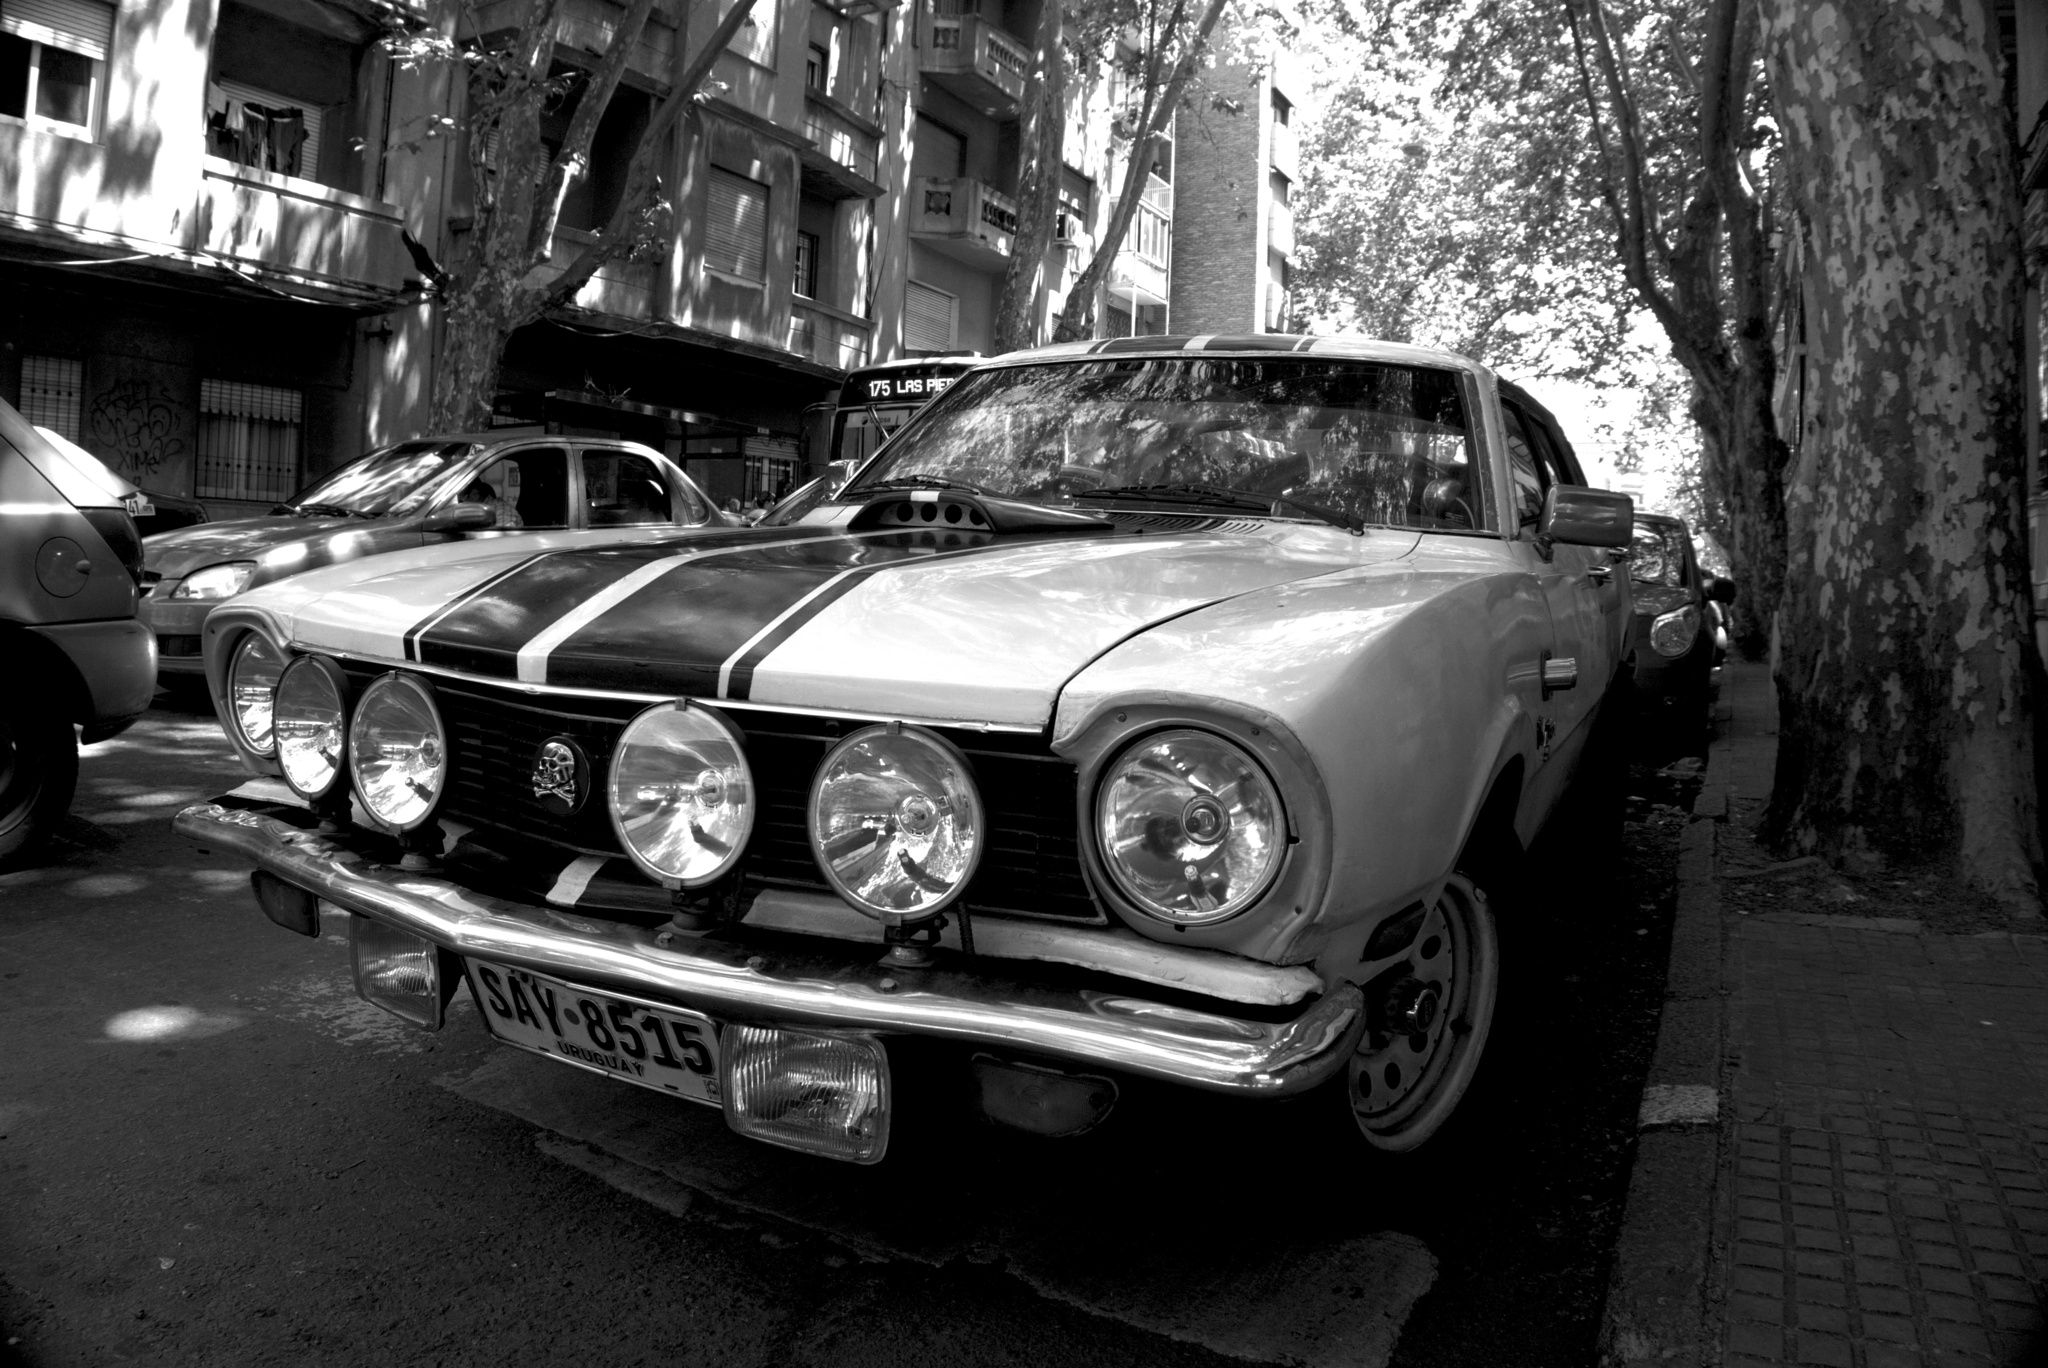 Ford Maverick by Daniel Guillermo